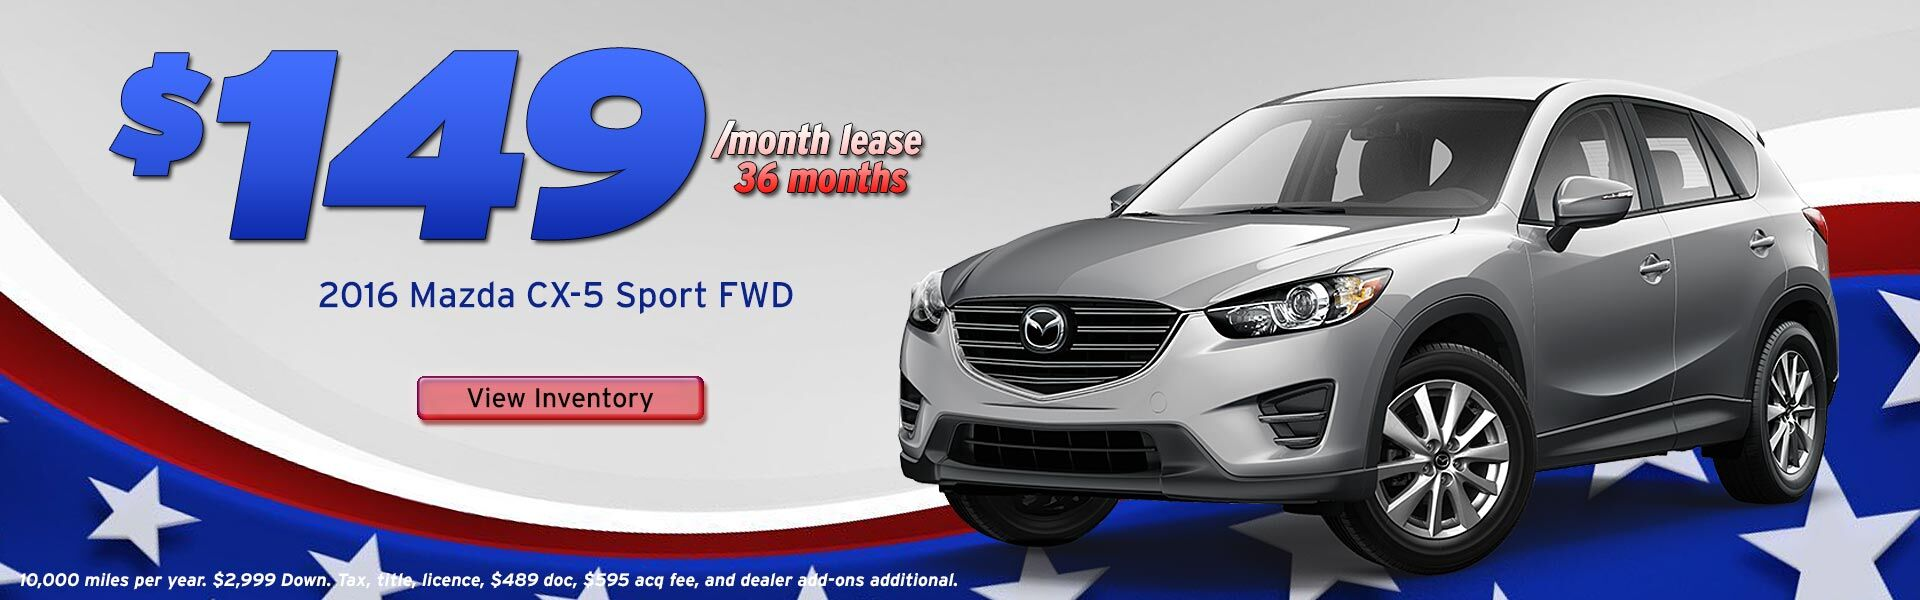 CX-5 Sport Lease